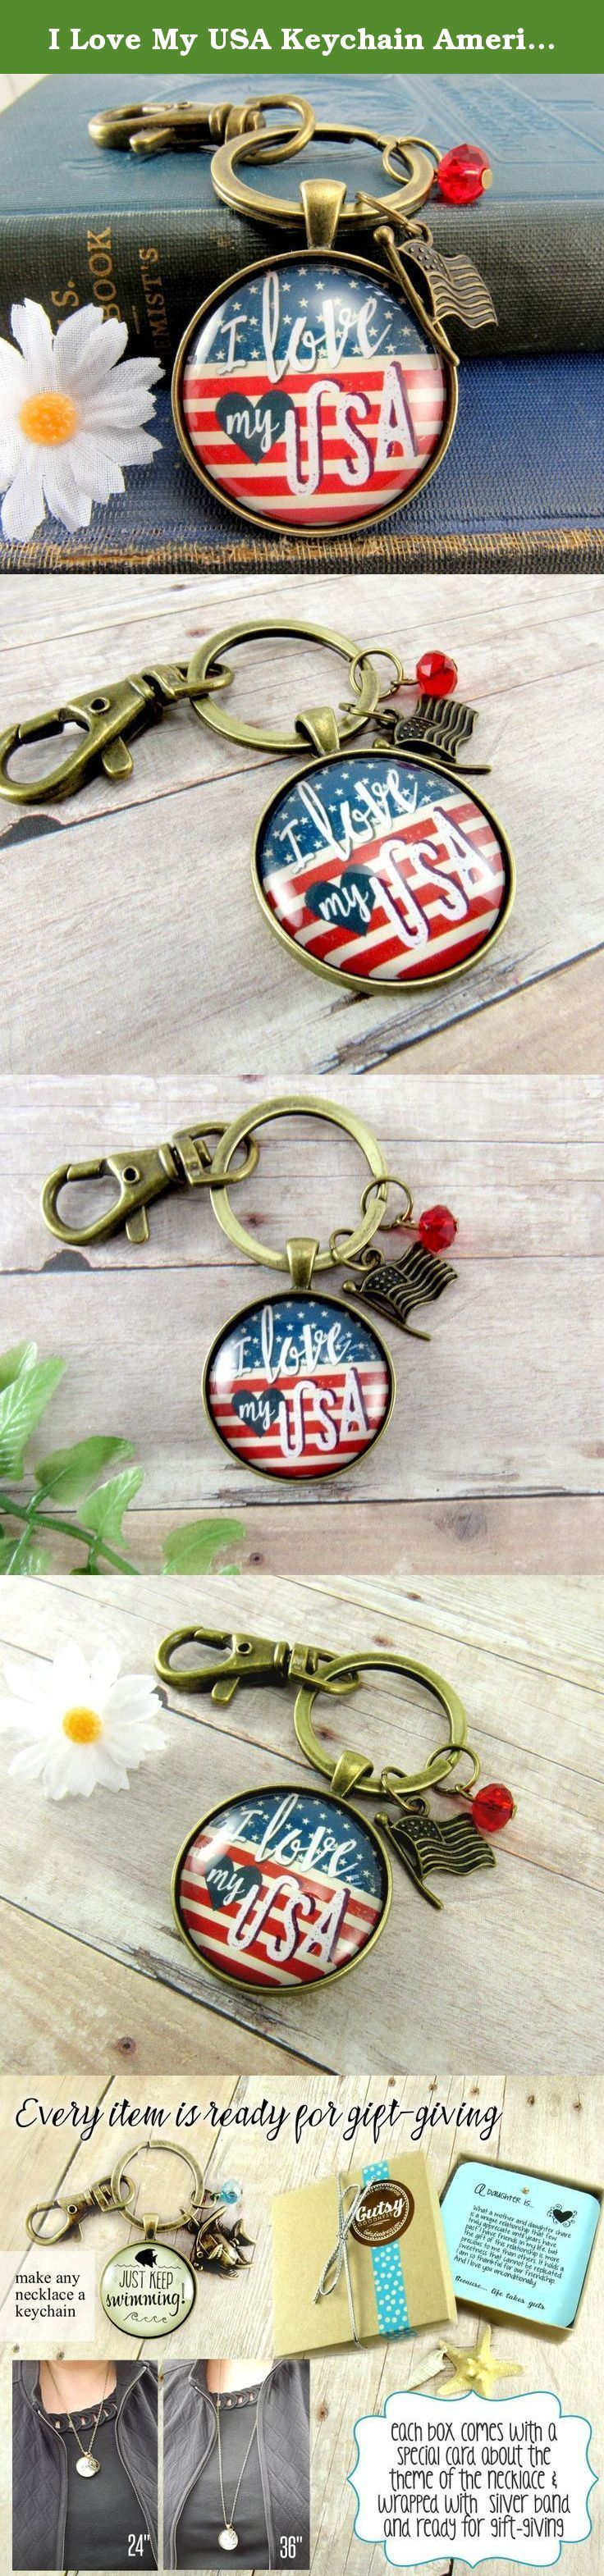 """I Love My USA Keychain American Flag Patriotic Vintage Style Keychain, Glass Round 1.20"""" Retro Looking Pendant Key Holder, Ring. This glass pendant key chain has a vintage feel with a rustic American flag background and a beautifully detailed zinc alloy bronze-colored American flag charm. It also has a red glass bead. It's a distinctive piece of patriotic jewelry designed by Gutsy Goodness. -- ABOUT IT -- The image has an background of antique American flag with stars and stripes, along…"""